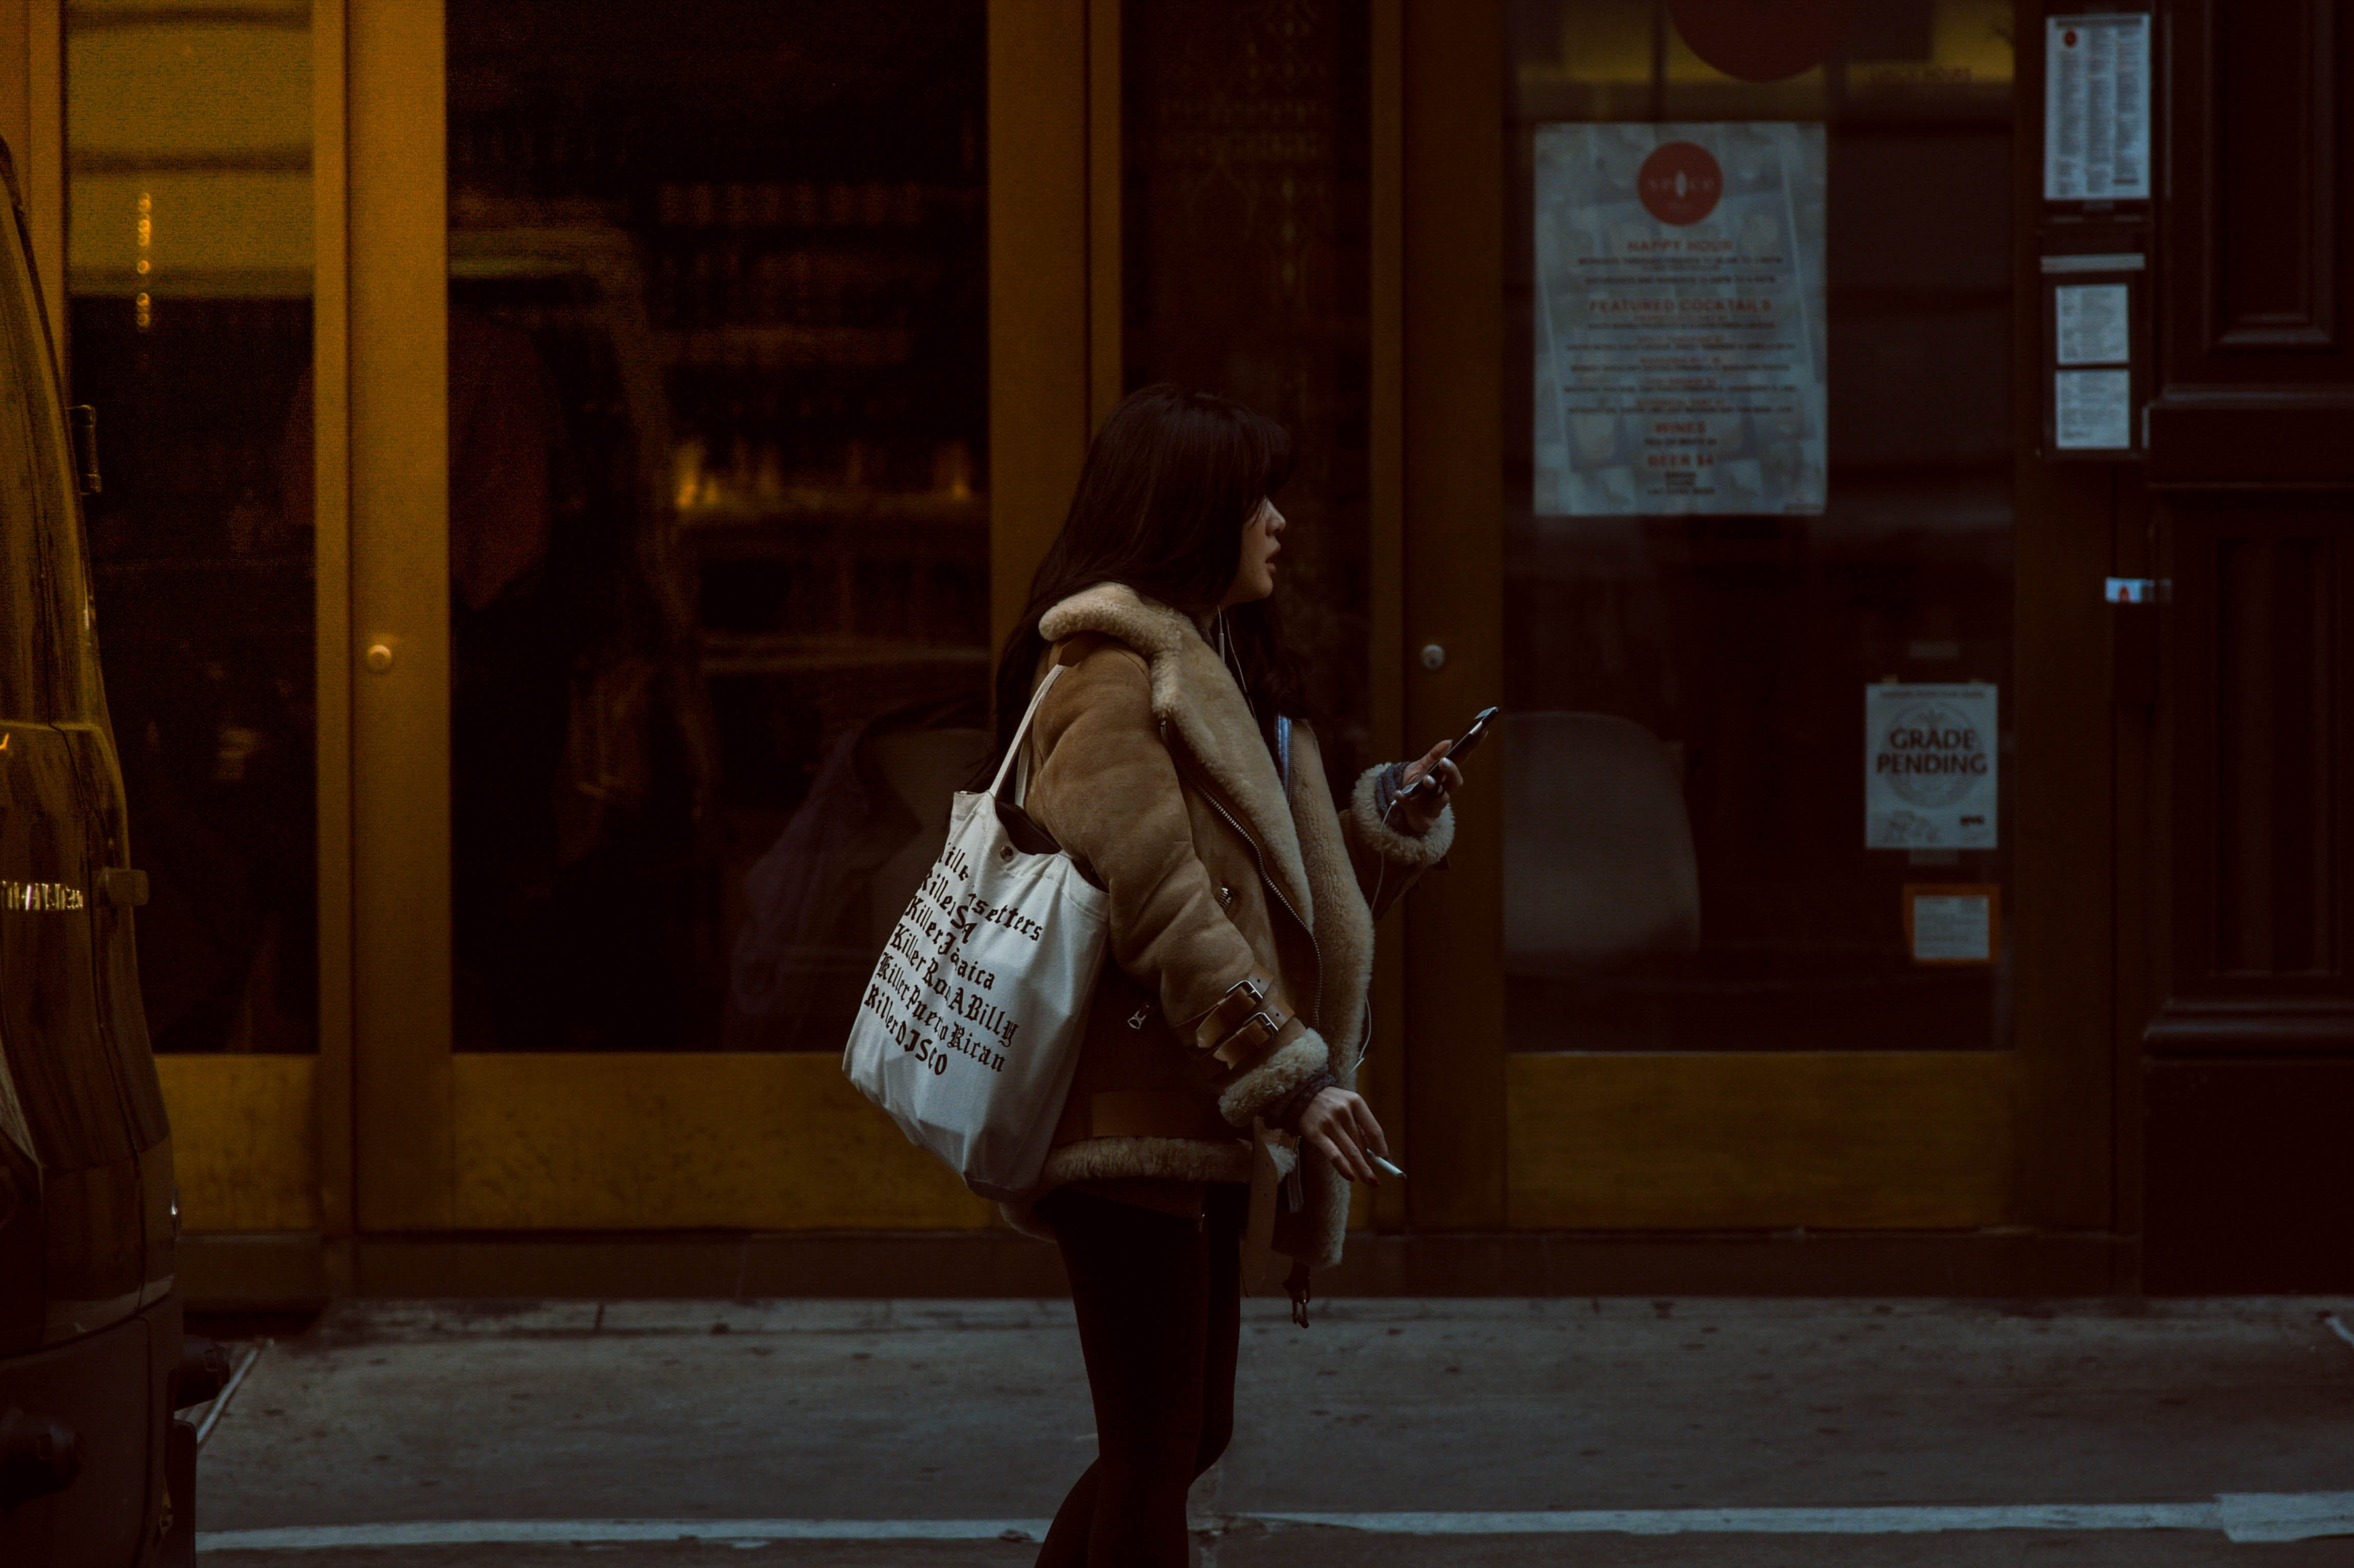 Woman Carrying White Tote Standing Beside Brown Glass Door Building